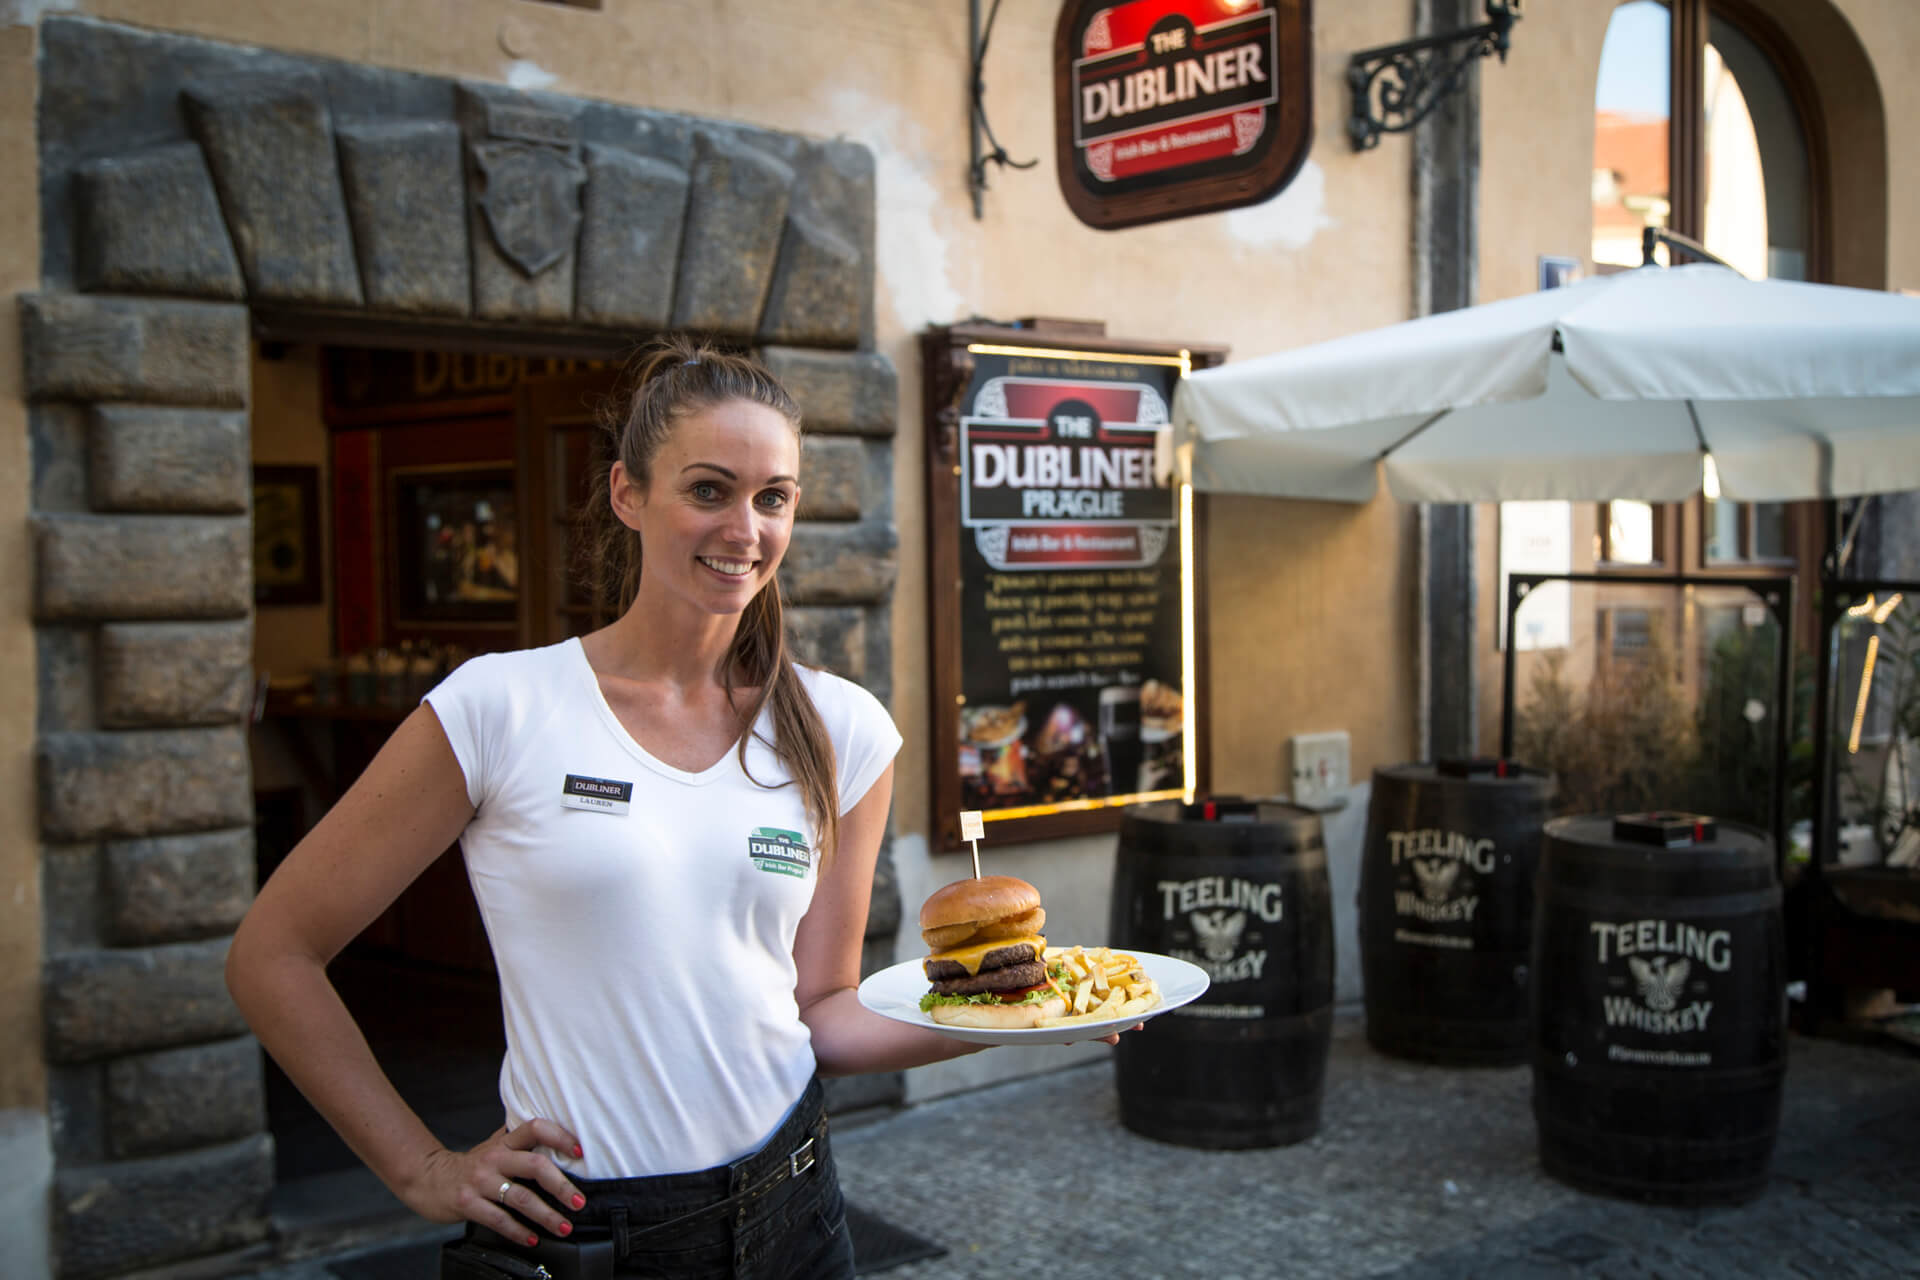 Gallery 131 | The Dubliner Prague Irish Bar